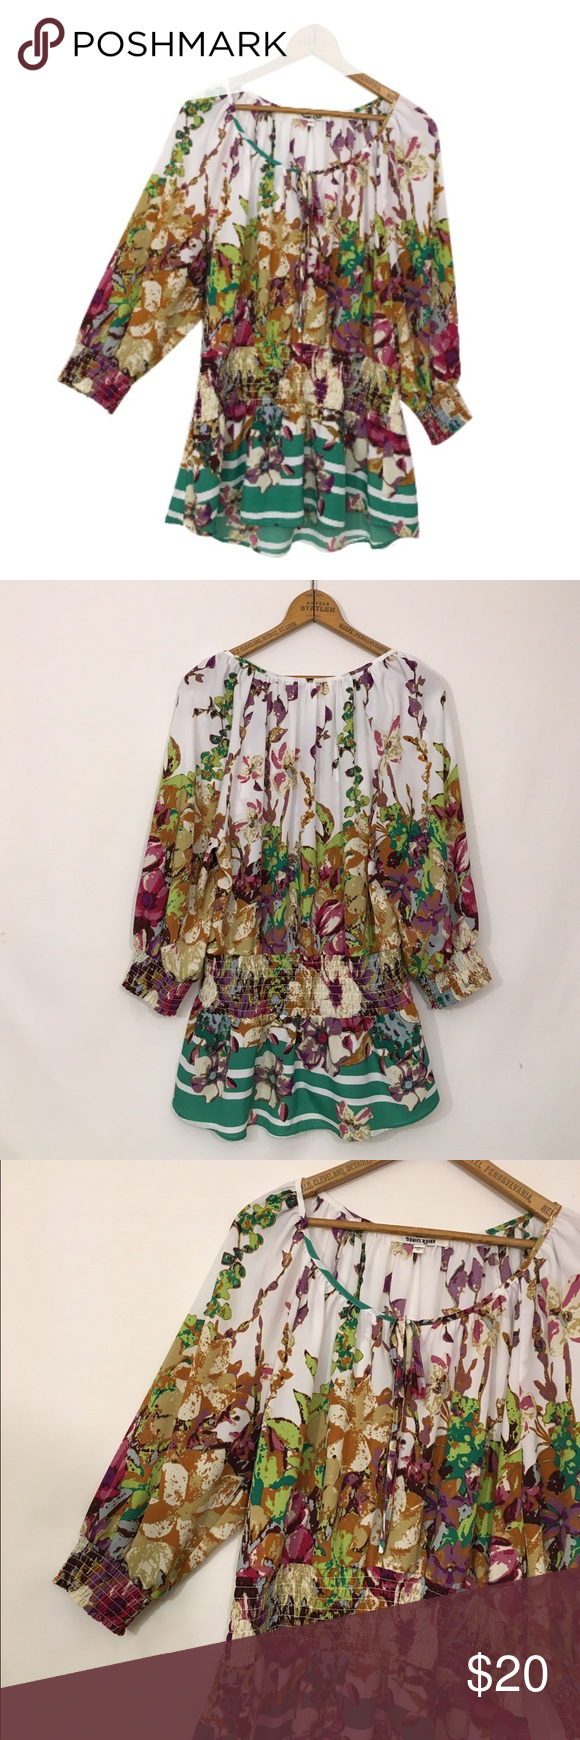 DANIEL RAINN Printed gathered waist peasant top DANIEL RAINN Printed gathered waist peasant top  Excellent condition!   Polyester Slight sheerness and may require appropriate undergarments Elastic at waist, sleeve cuffs Tie, keyhole at neck  Bust 46 Length 28 Daniel Rainn Tops Blouses